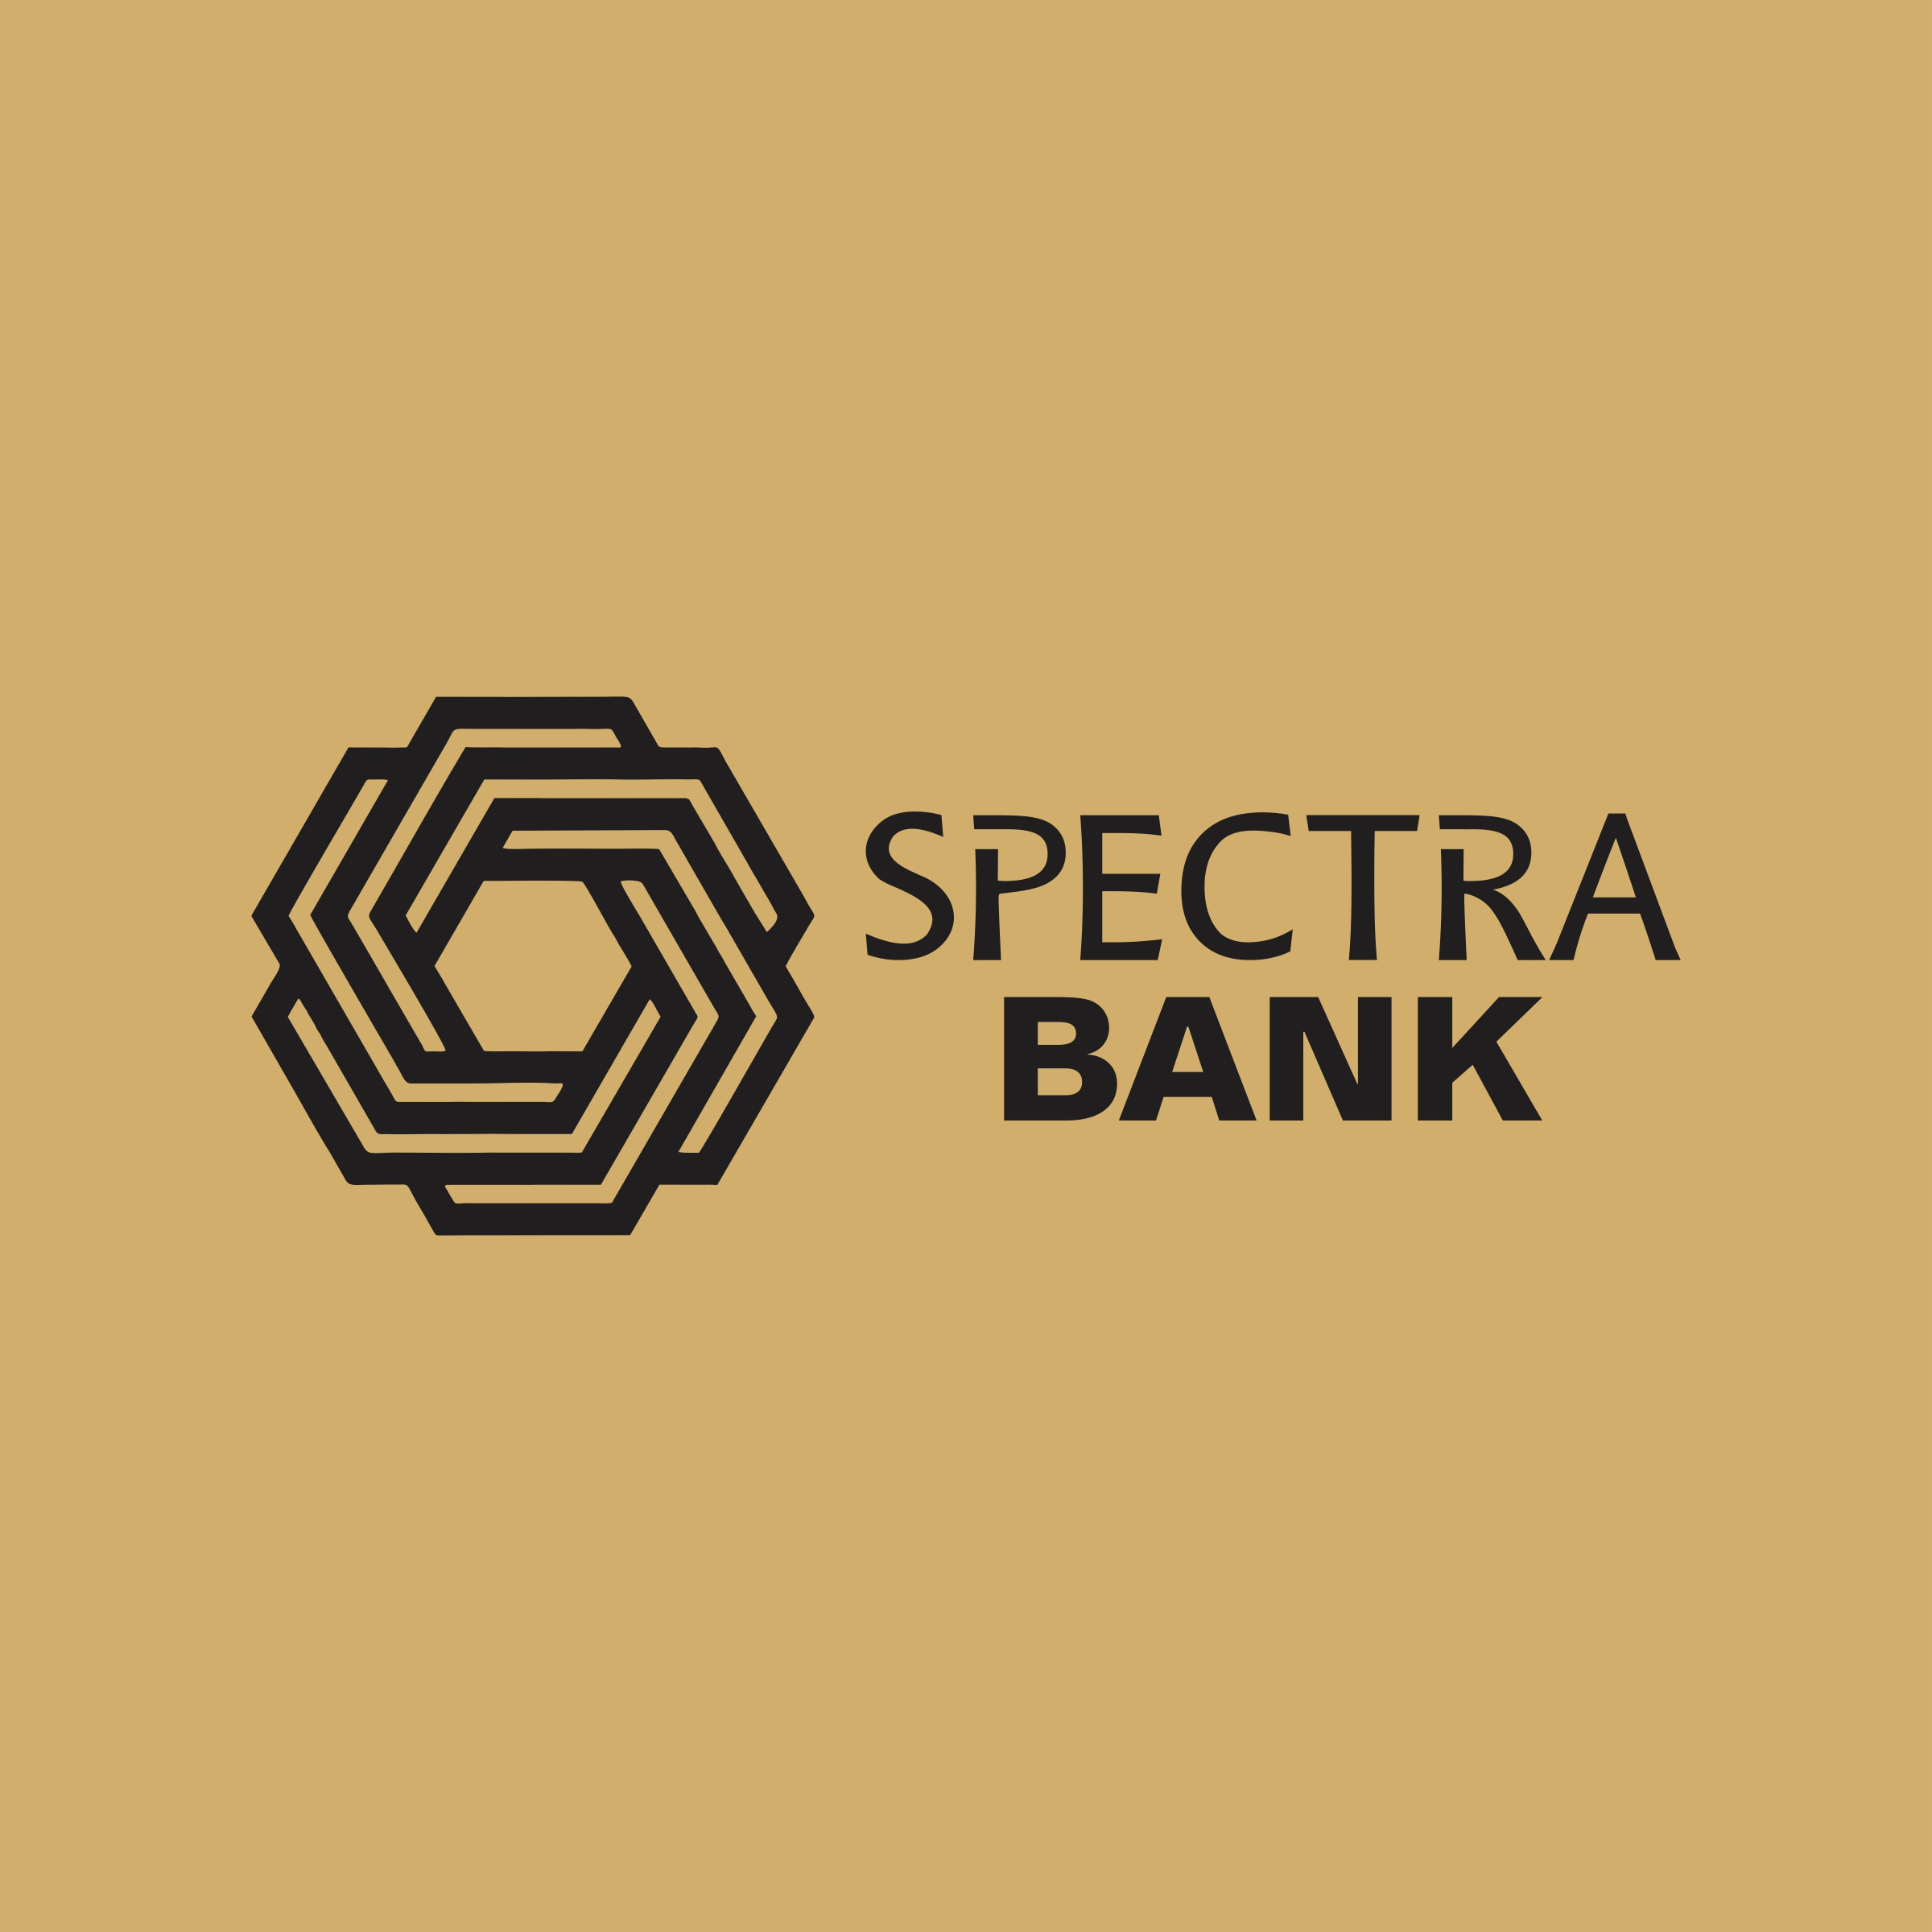 Spectra Bank